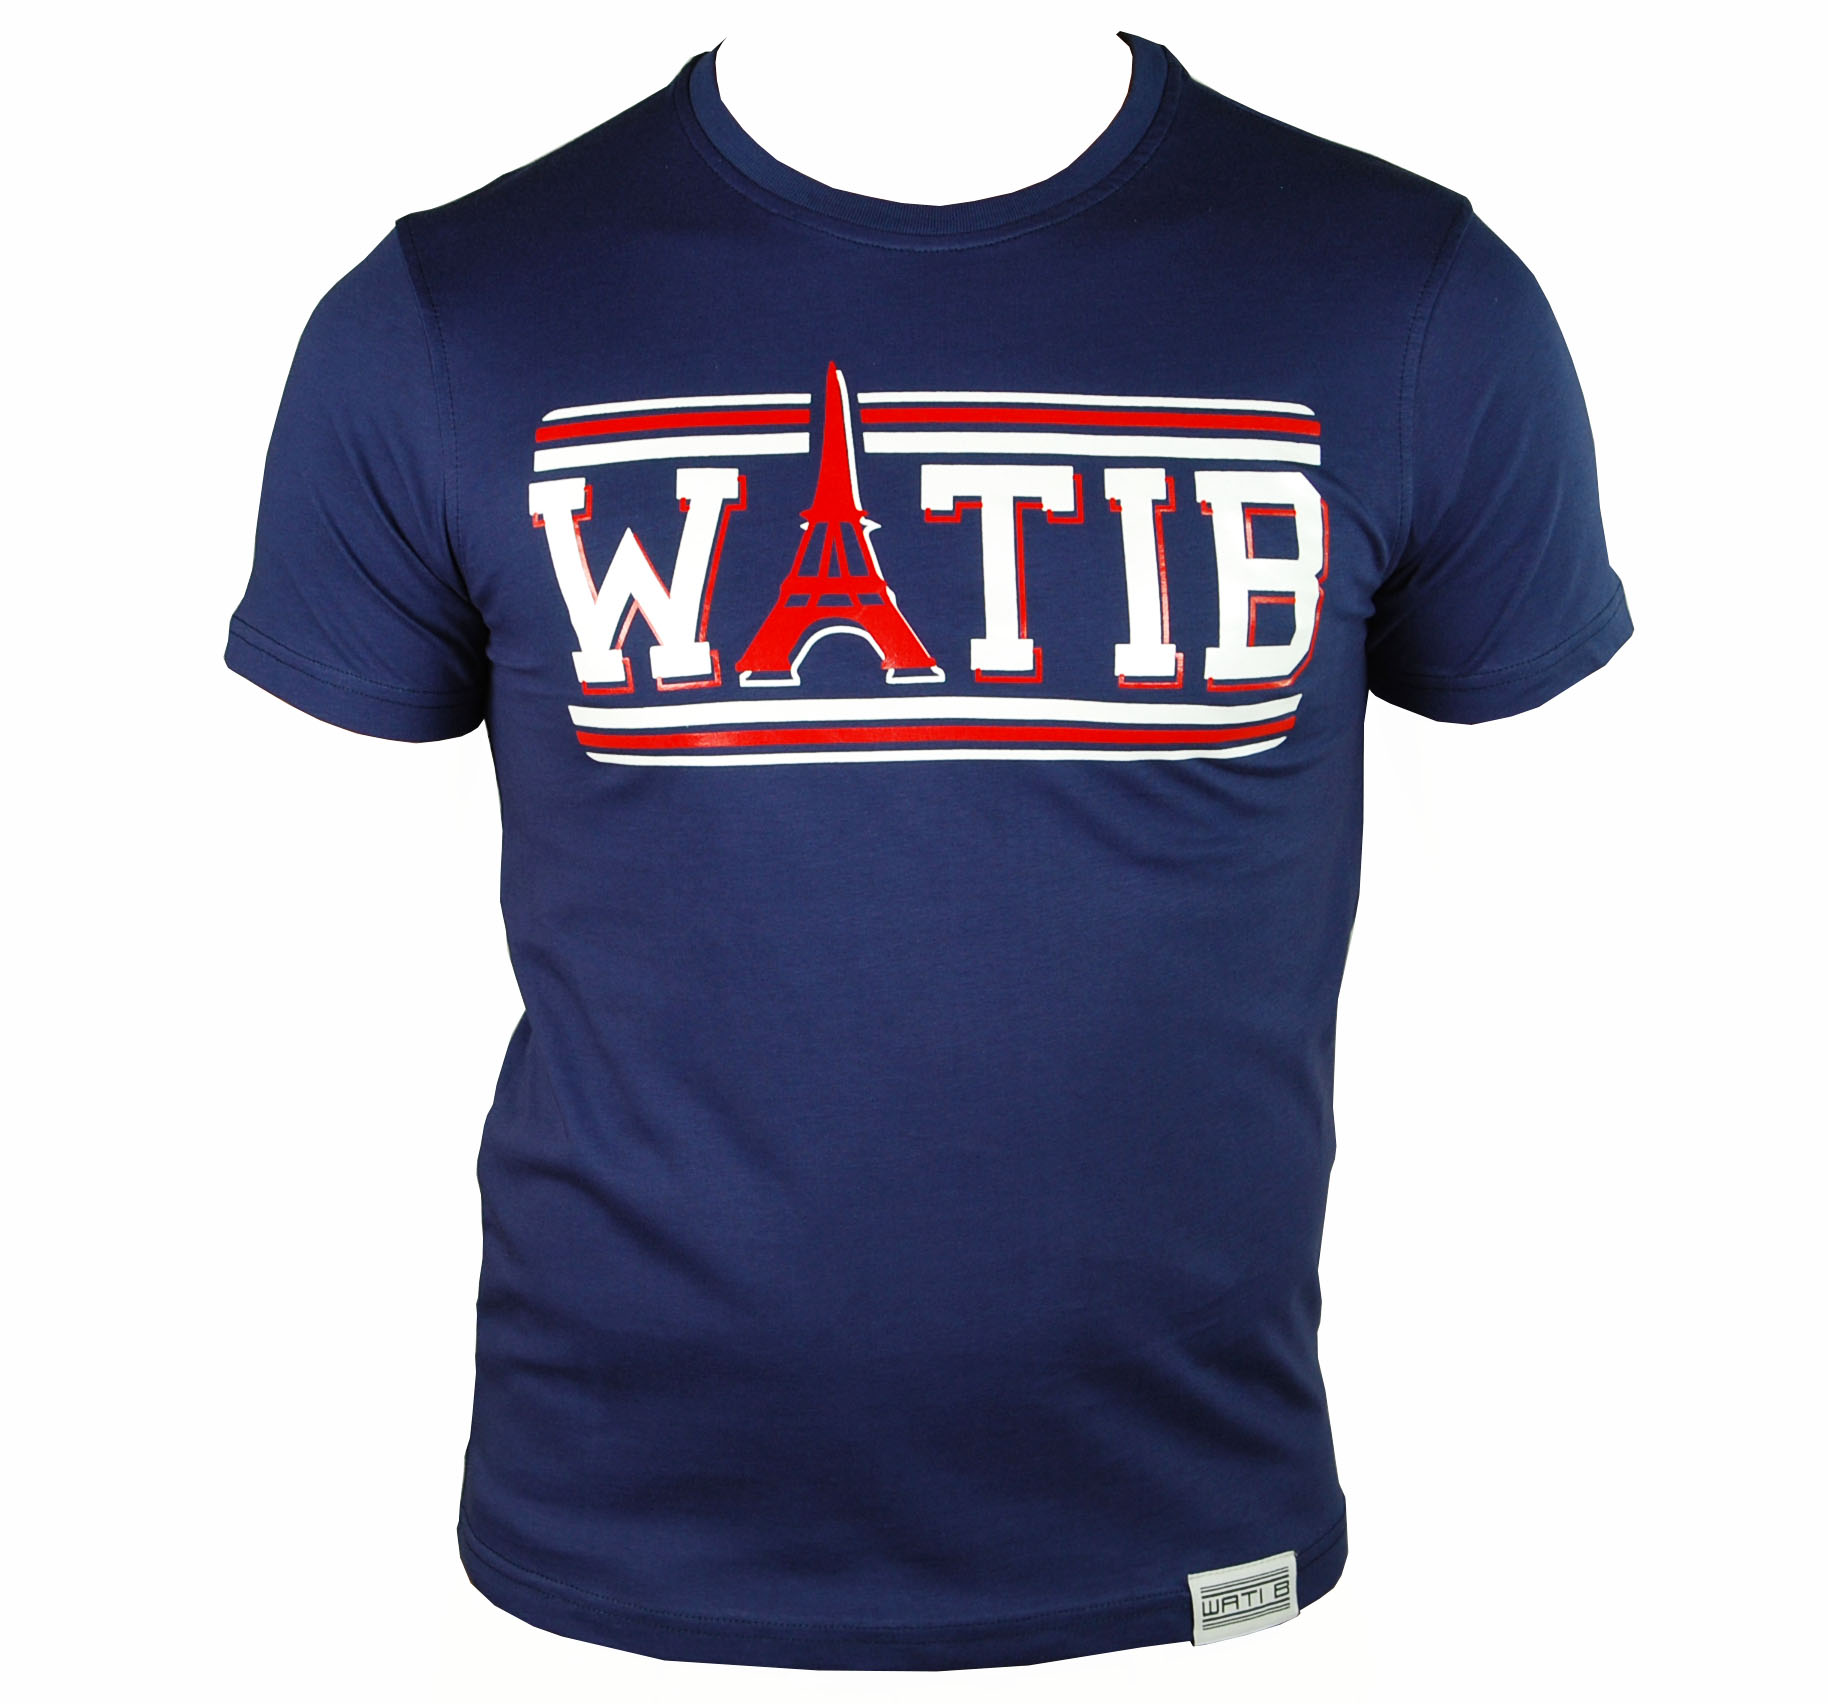 t shirt wati b enfant bleu marine rouge paris tour. Black Bedroom Furniture Sets. Home Design Ideas